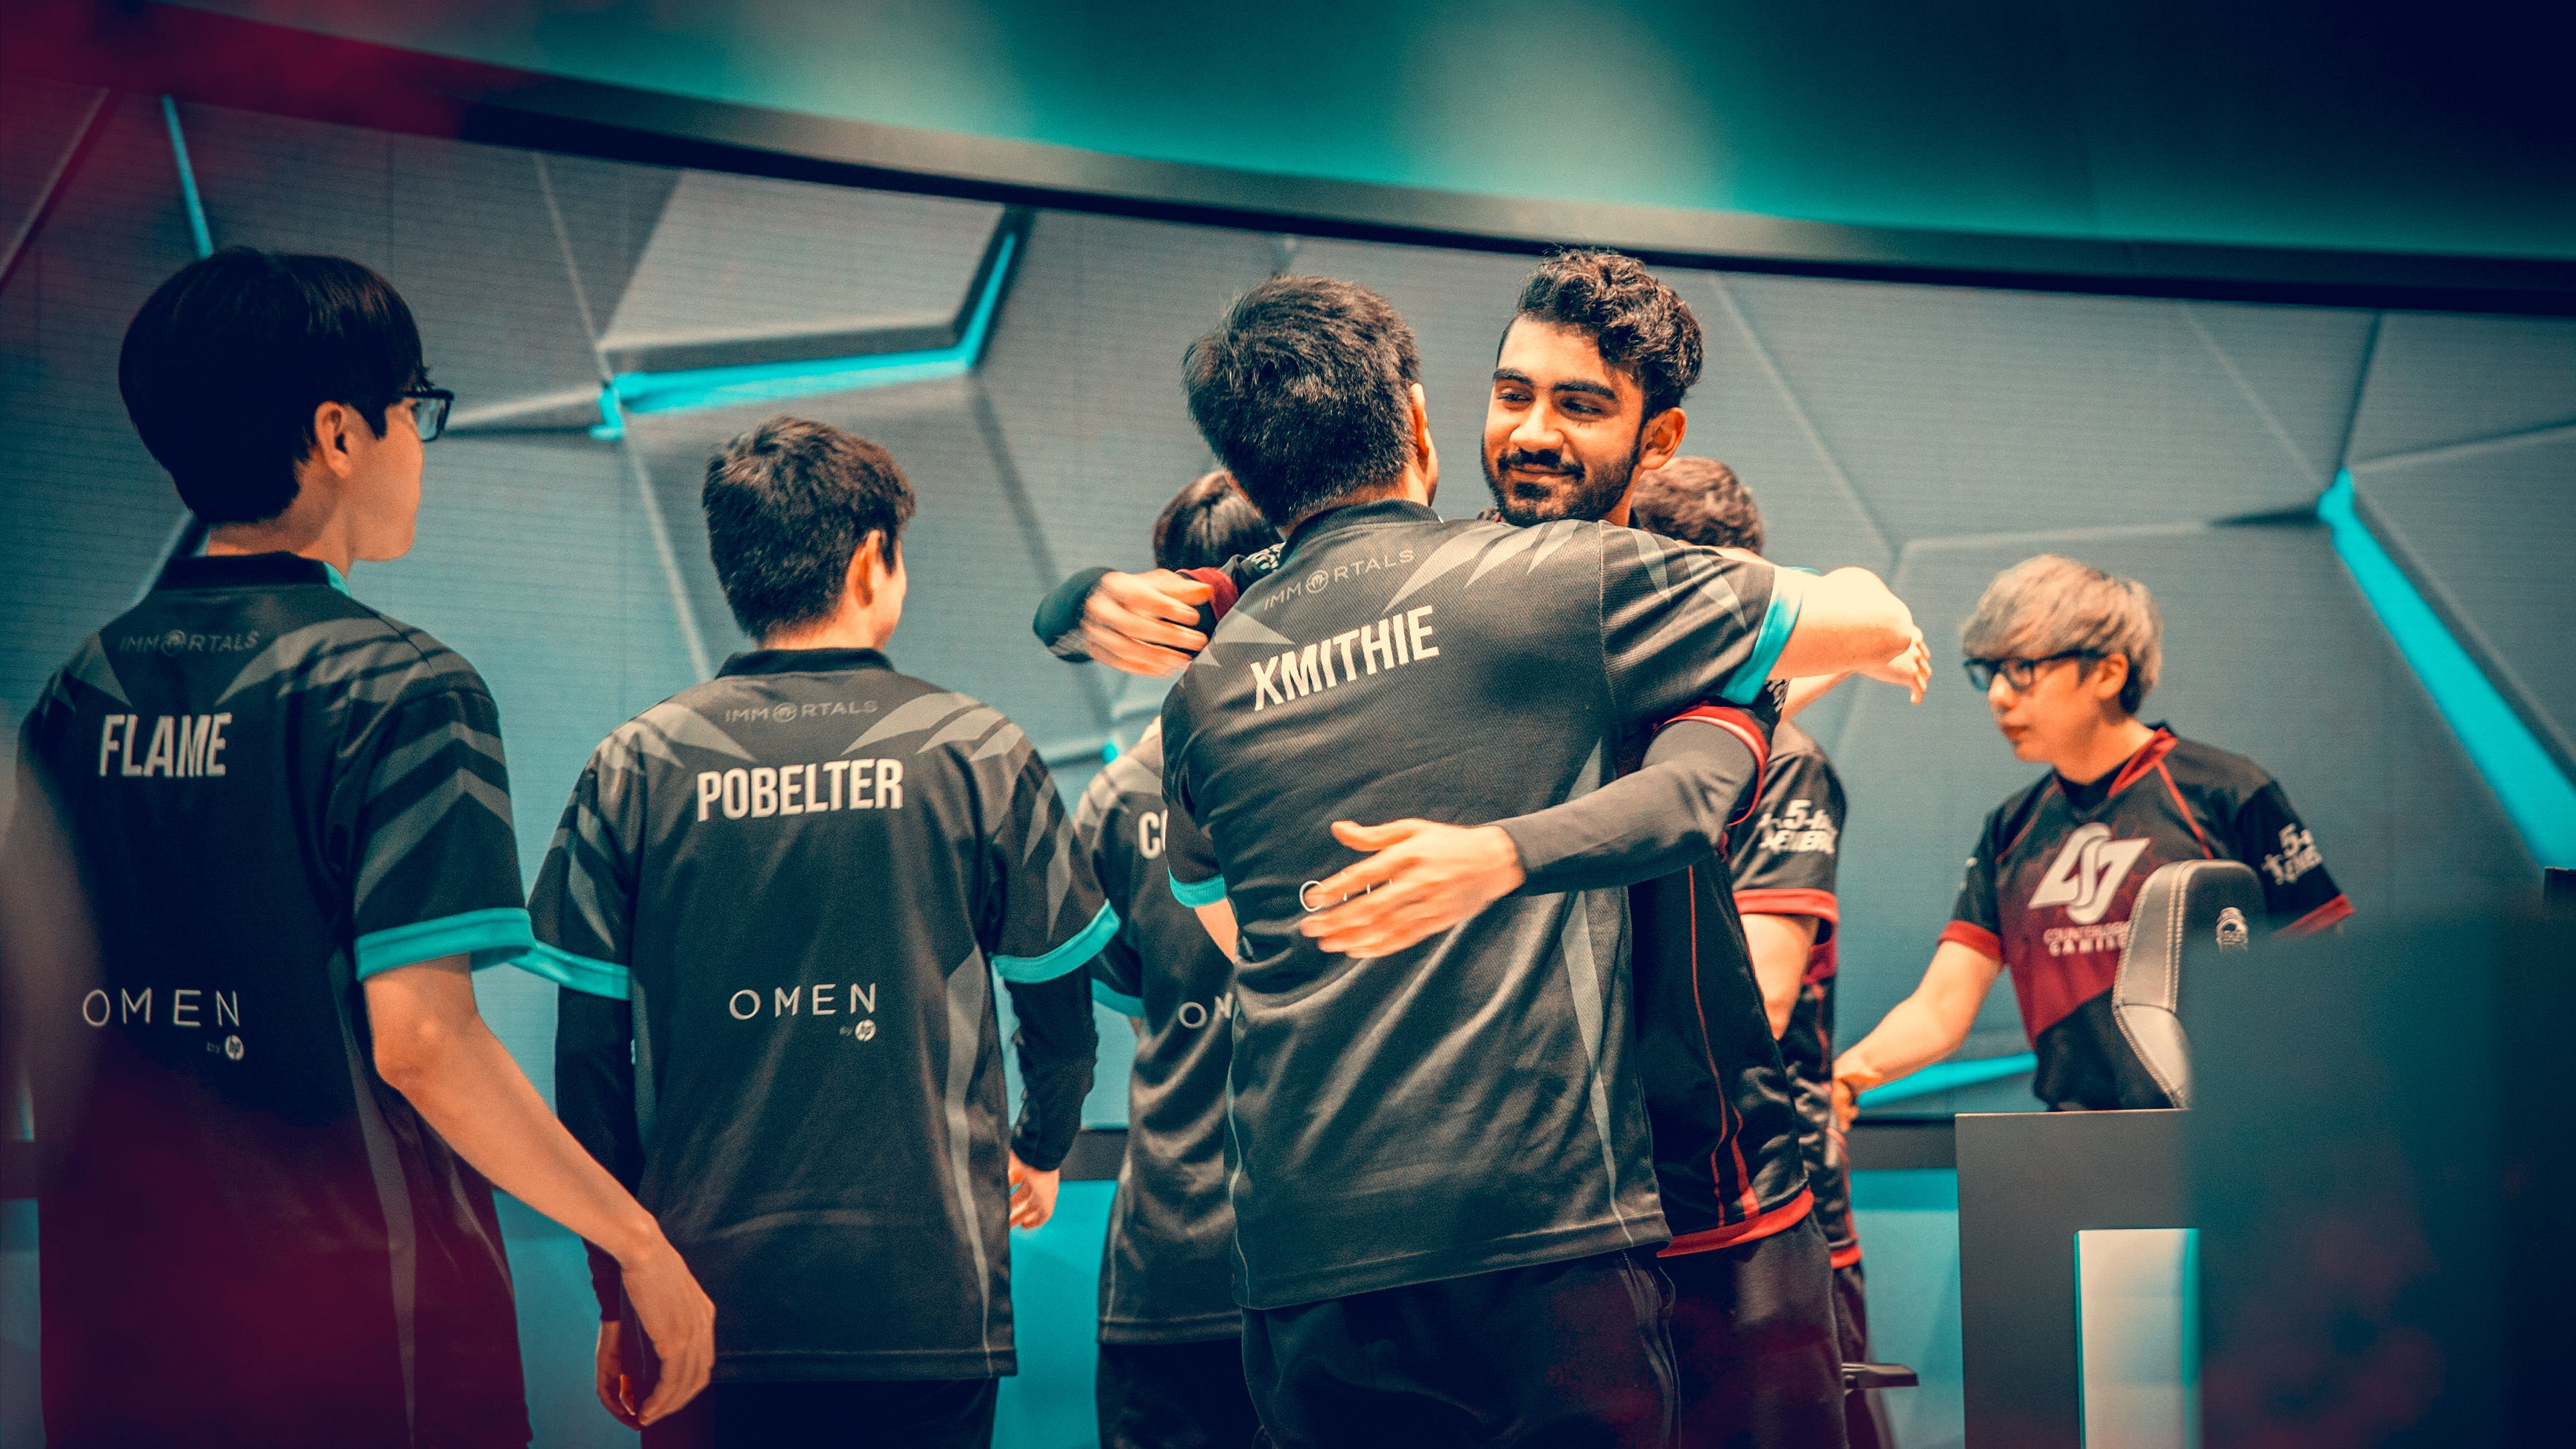 CLG DARSHAN AND IMT XMITHIE